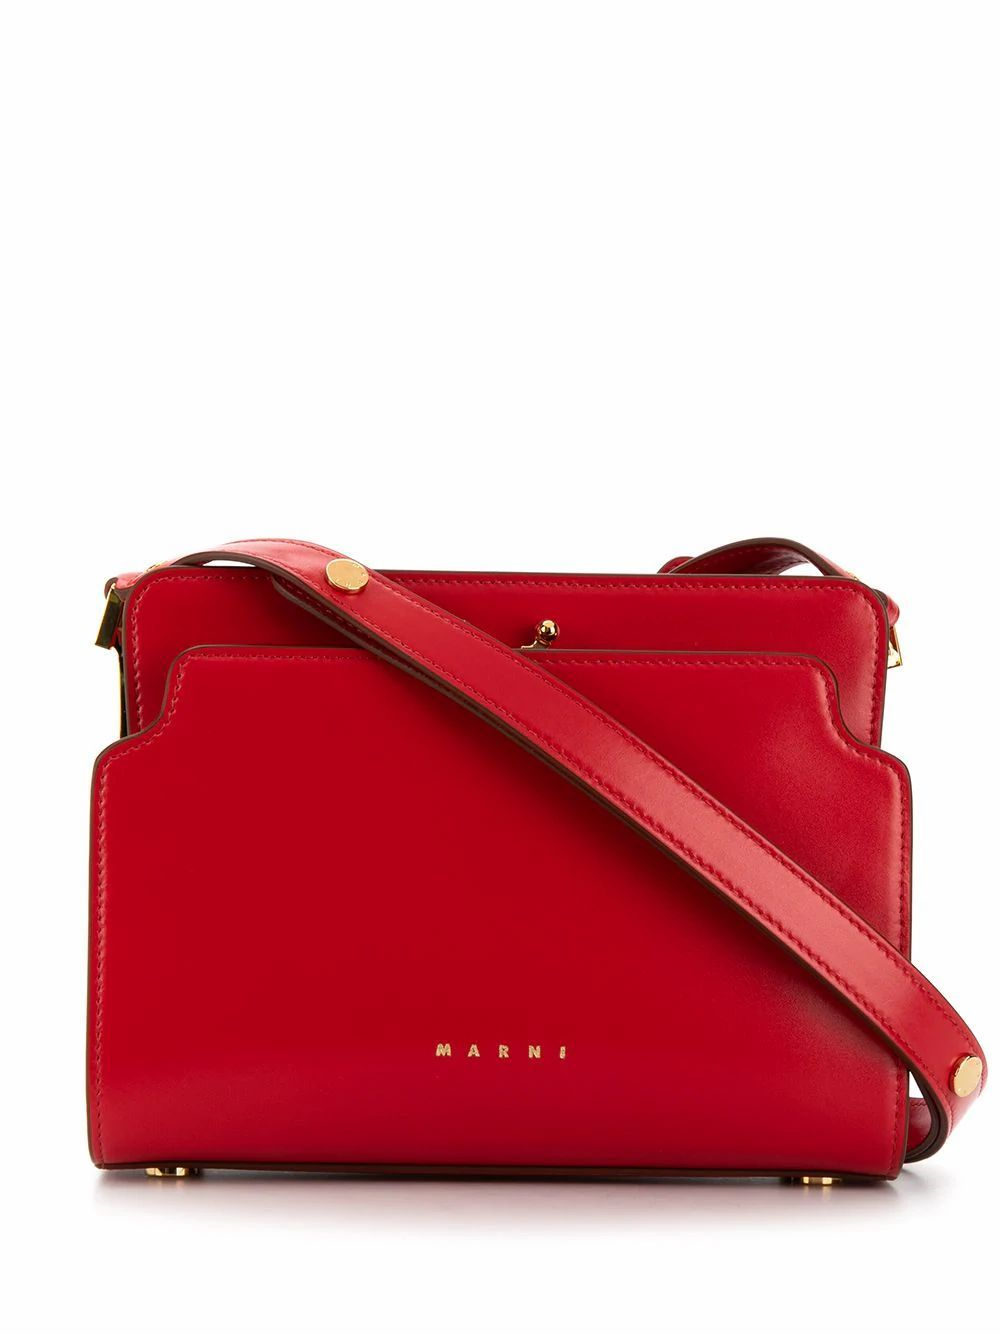 MARNI WOMEN'S SBMP0024Y0P2991Z309M RED LEATHER SHOULDER BAG